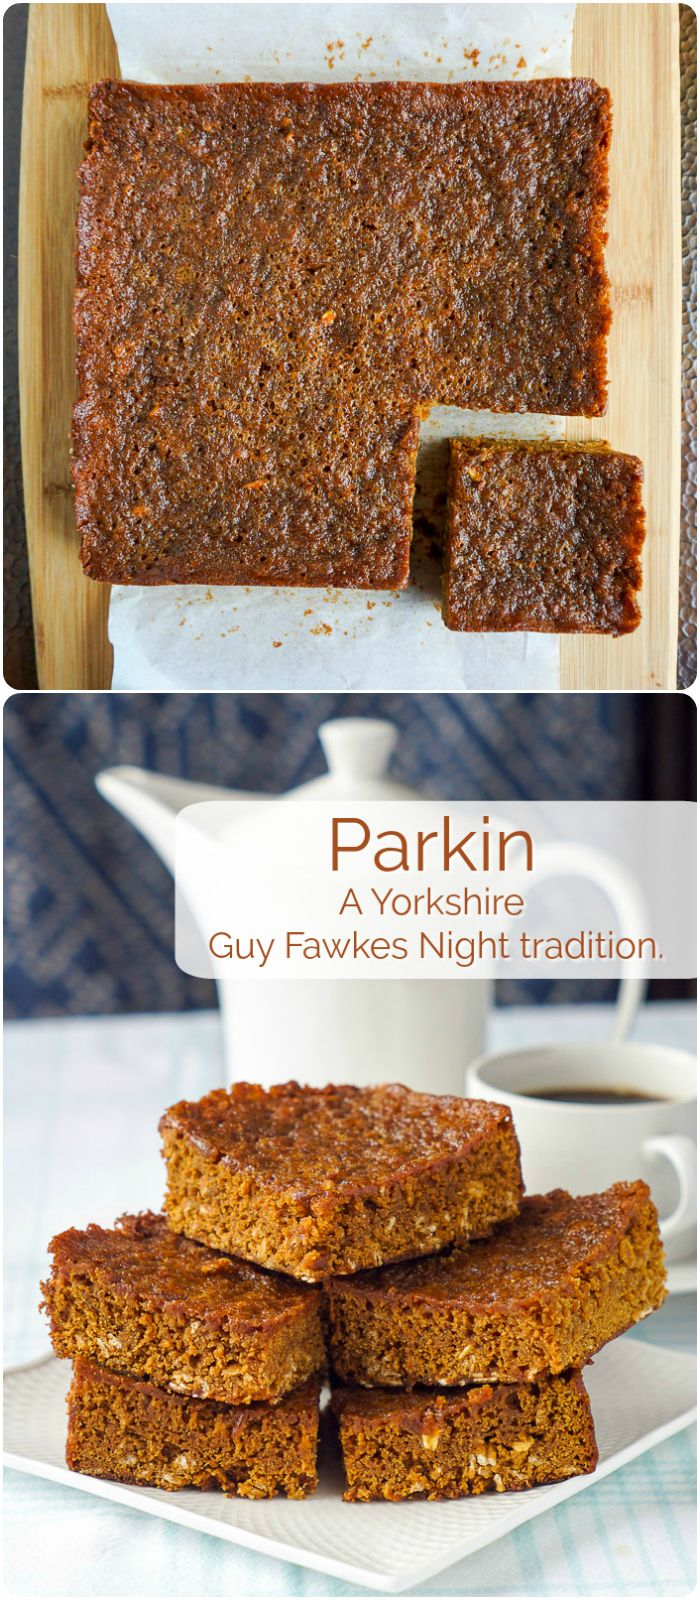 Parkin is a traditional sticky oat spice cake from northern England that's enjoyed on November 5, Guy Fawkes Night, i.e. Bonfire Night!